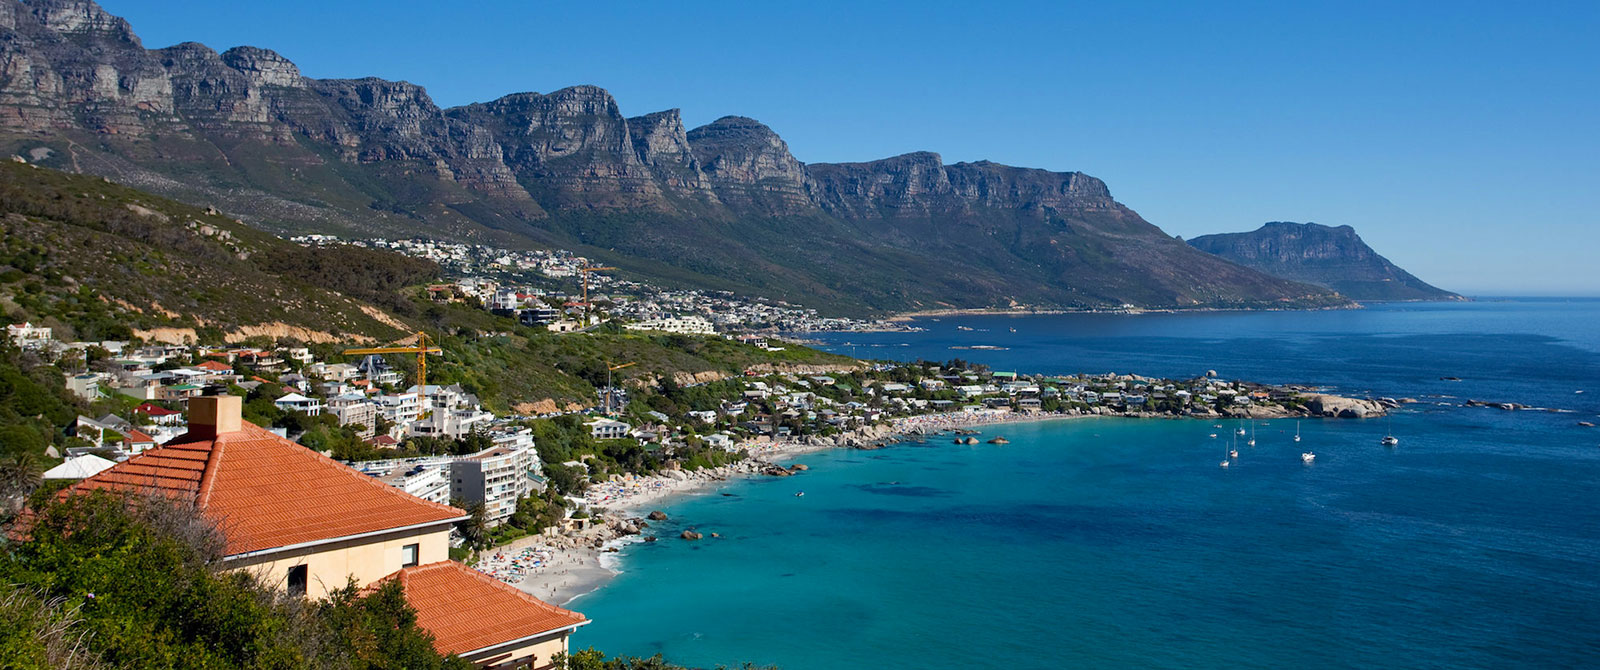 Clifton Beaches and the Twelve Apostles in Cape Town, South Africa